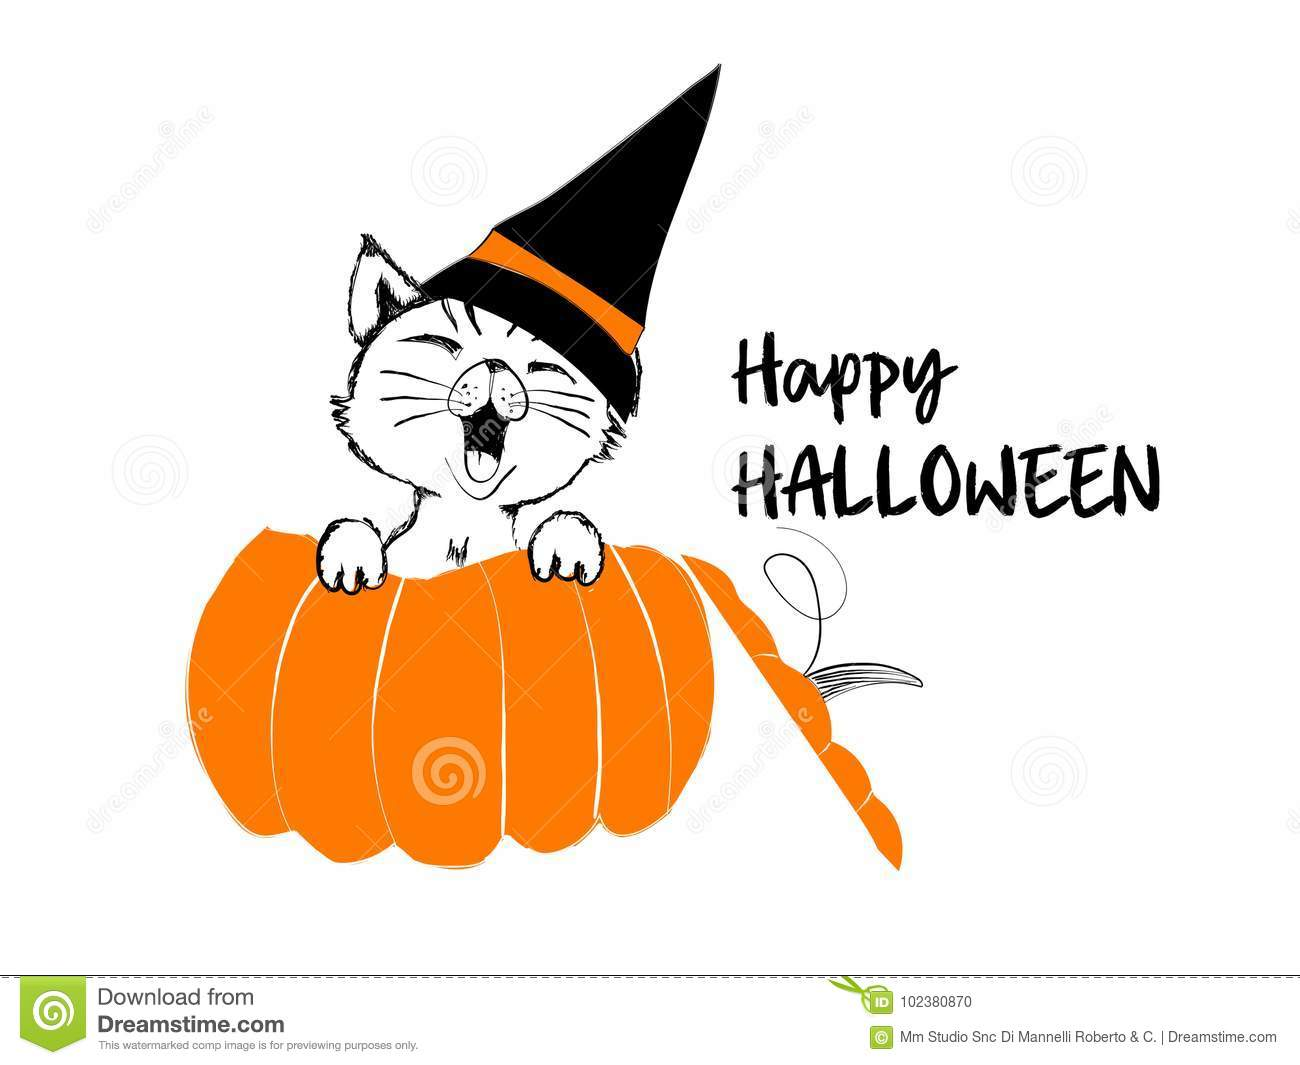 cute black cat orange pumpkin happy halloween illustration isolated white background